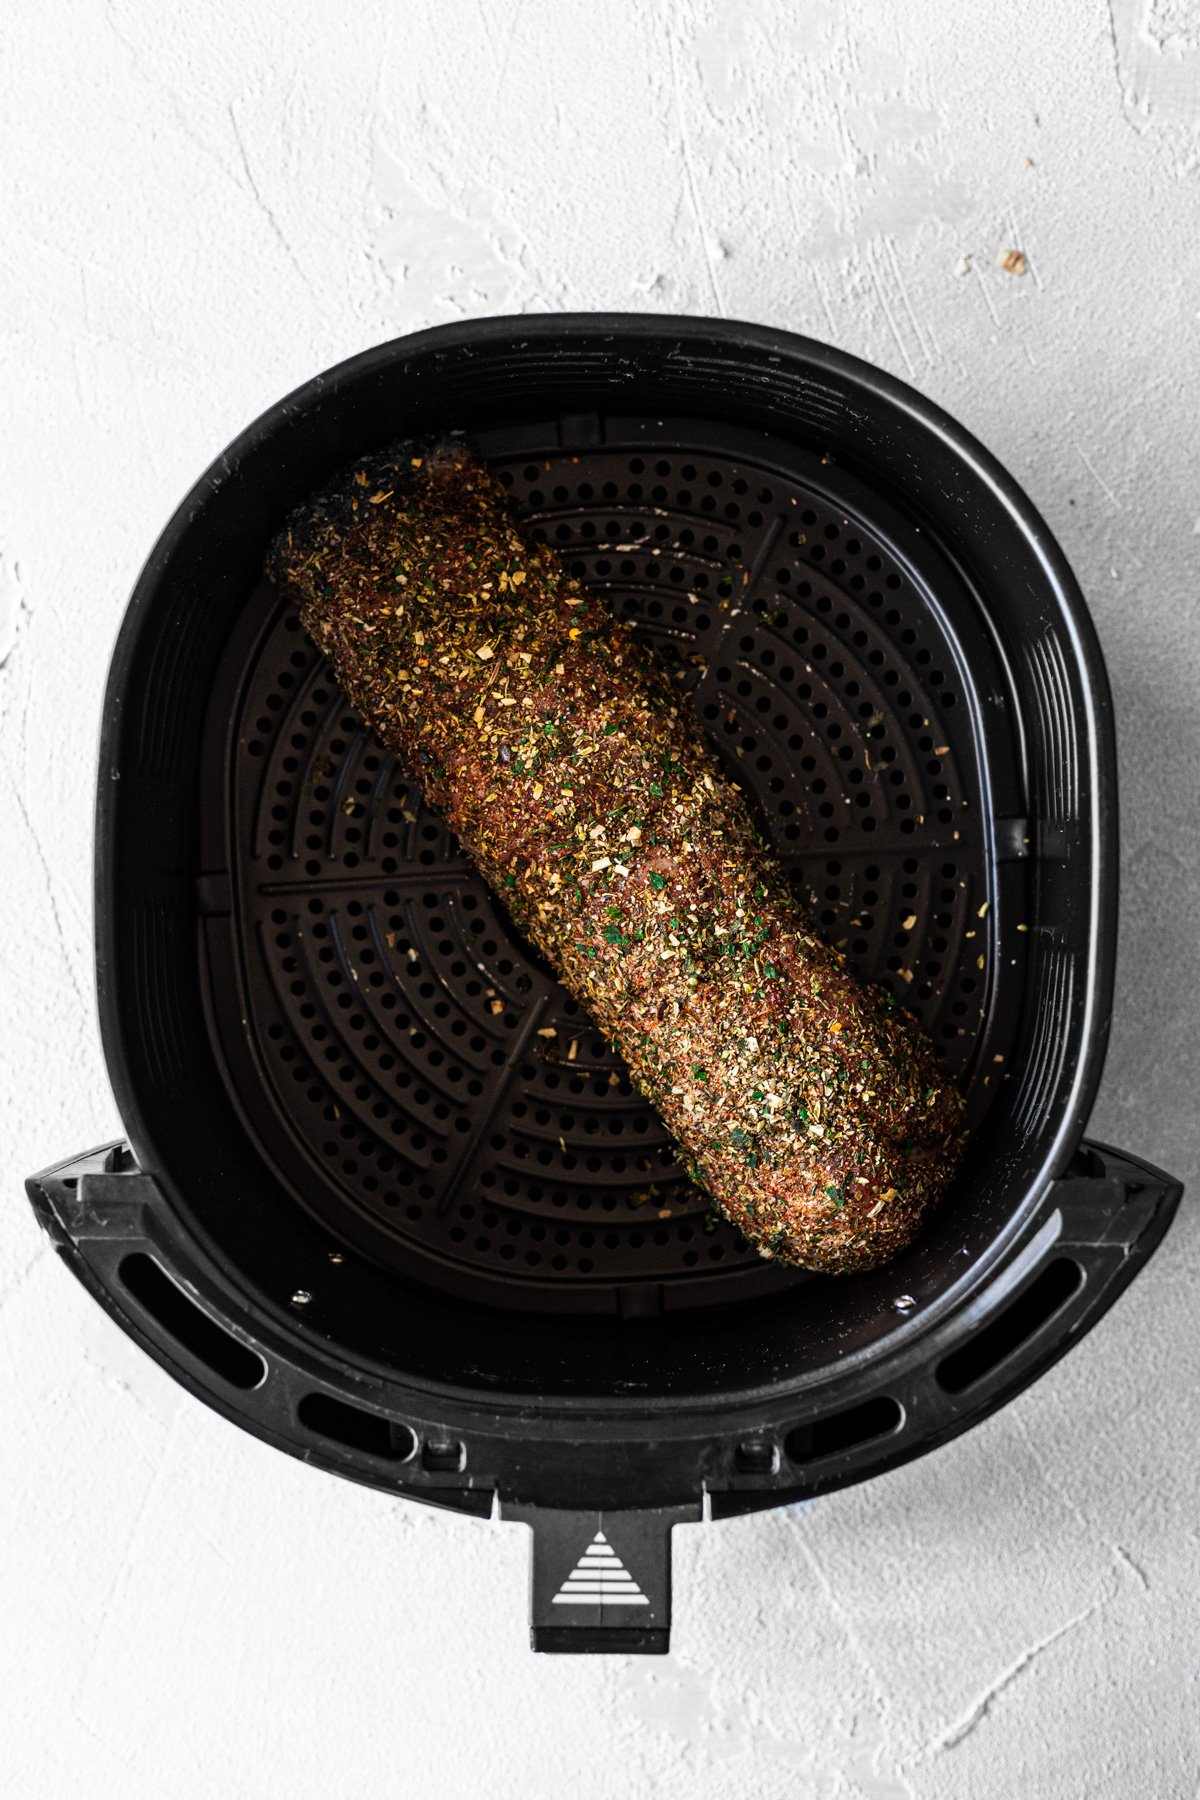 Pork tenderloin coated in dry chimichurri rub and inside an air fryer basket